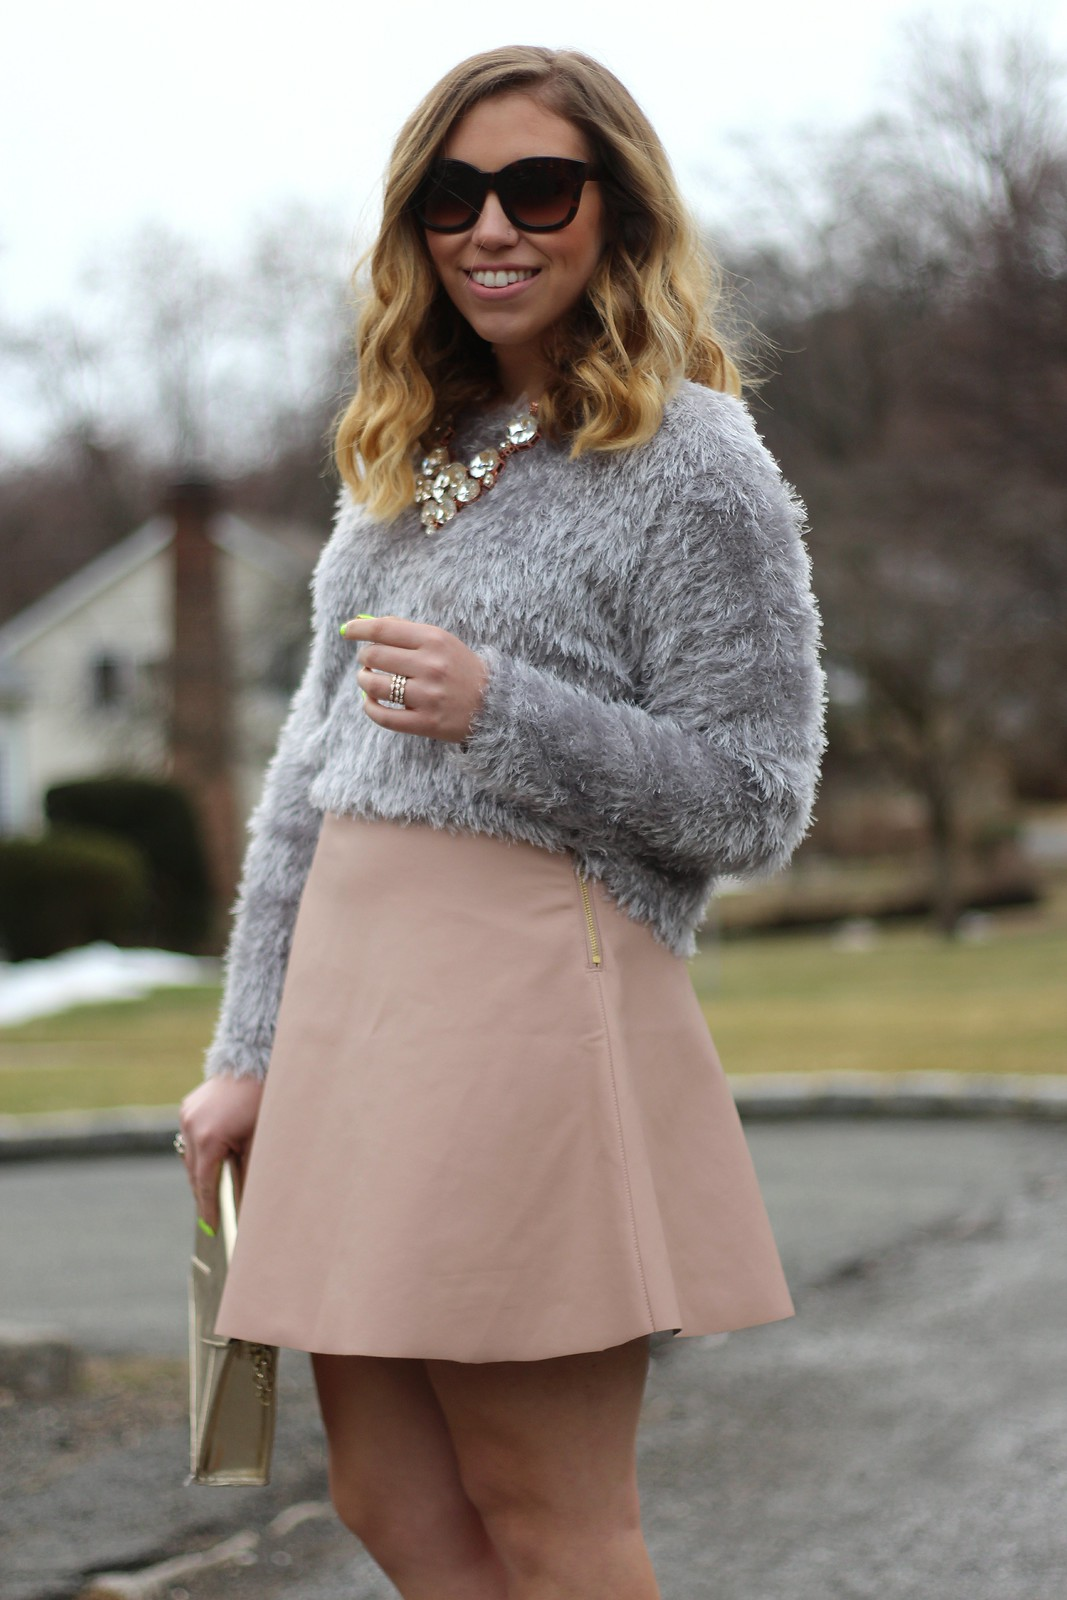 Gray Fuzzy Sweater | Pale Pink Mini Skater Skirt | A Look Back at 10 Years of Blogging Living After Midnite Blogger Jackie Giardina